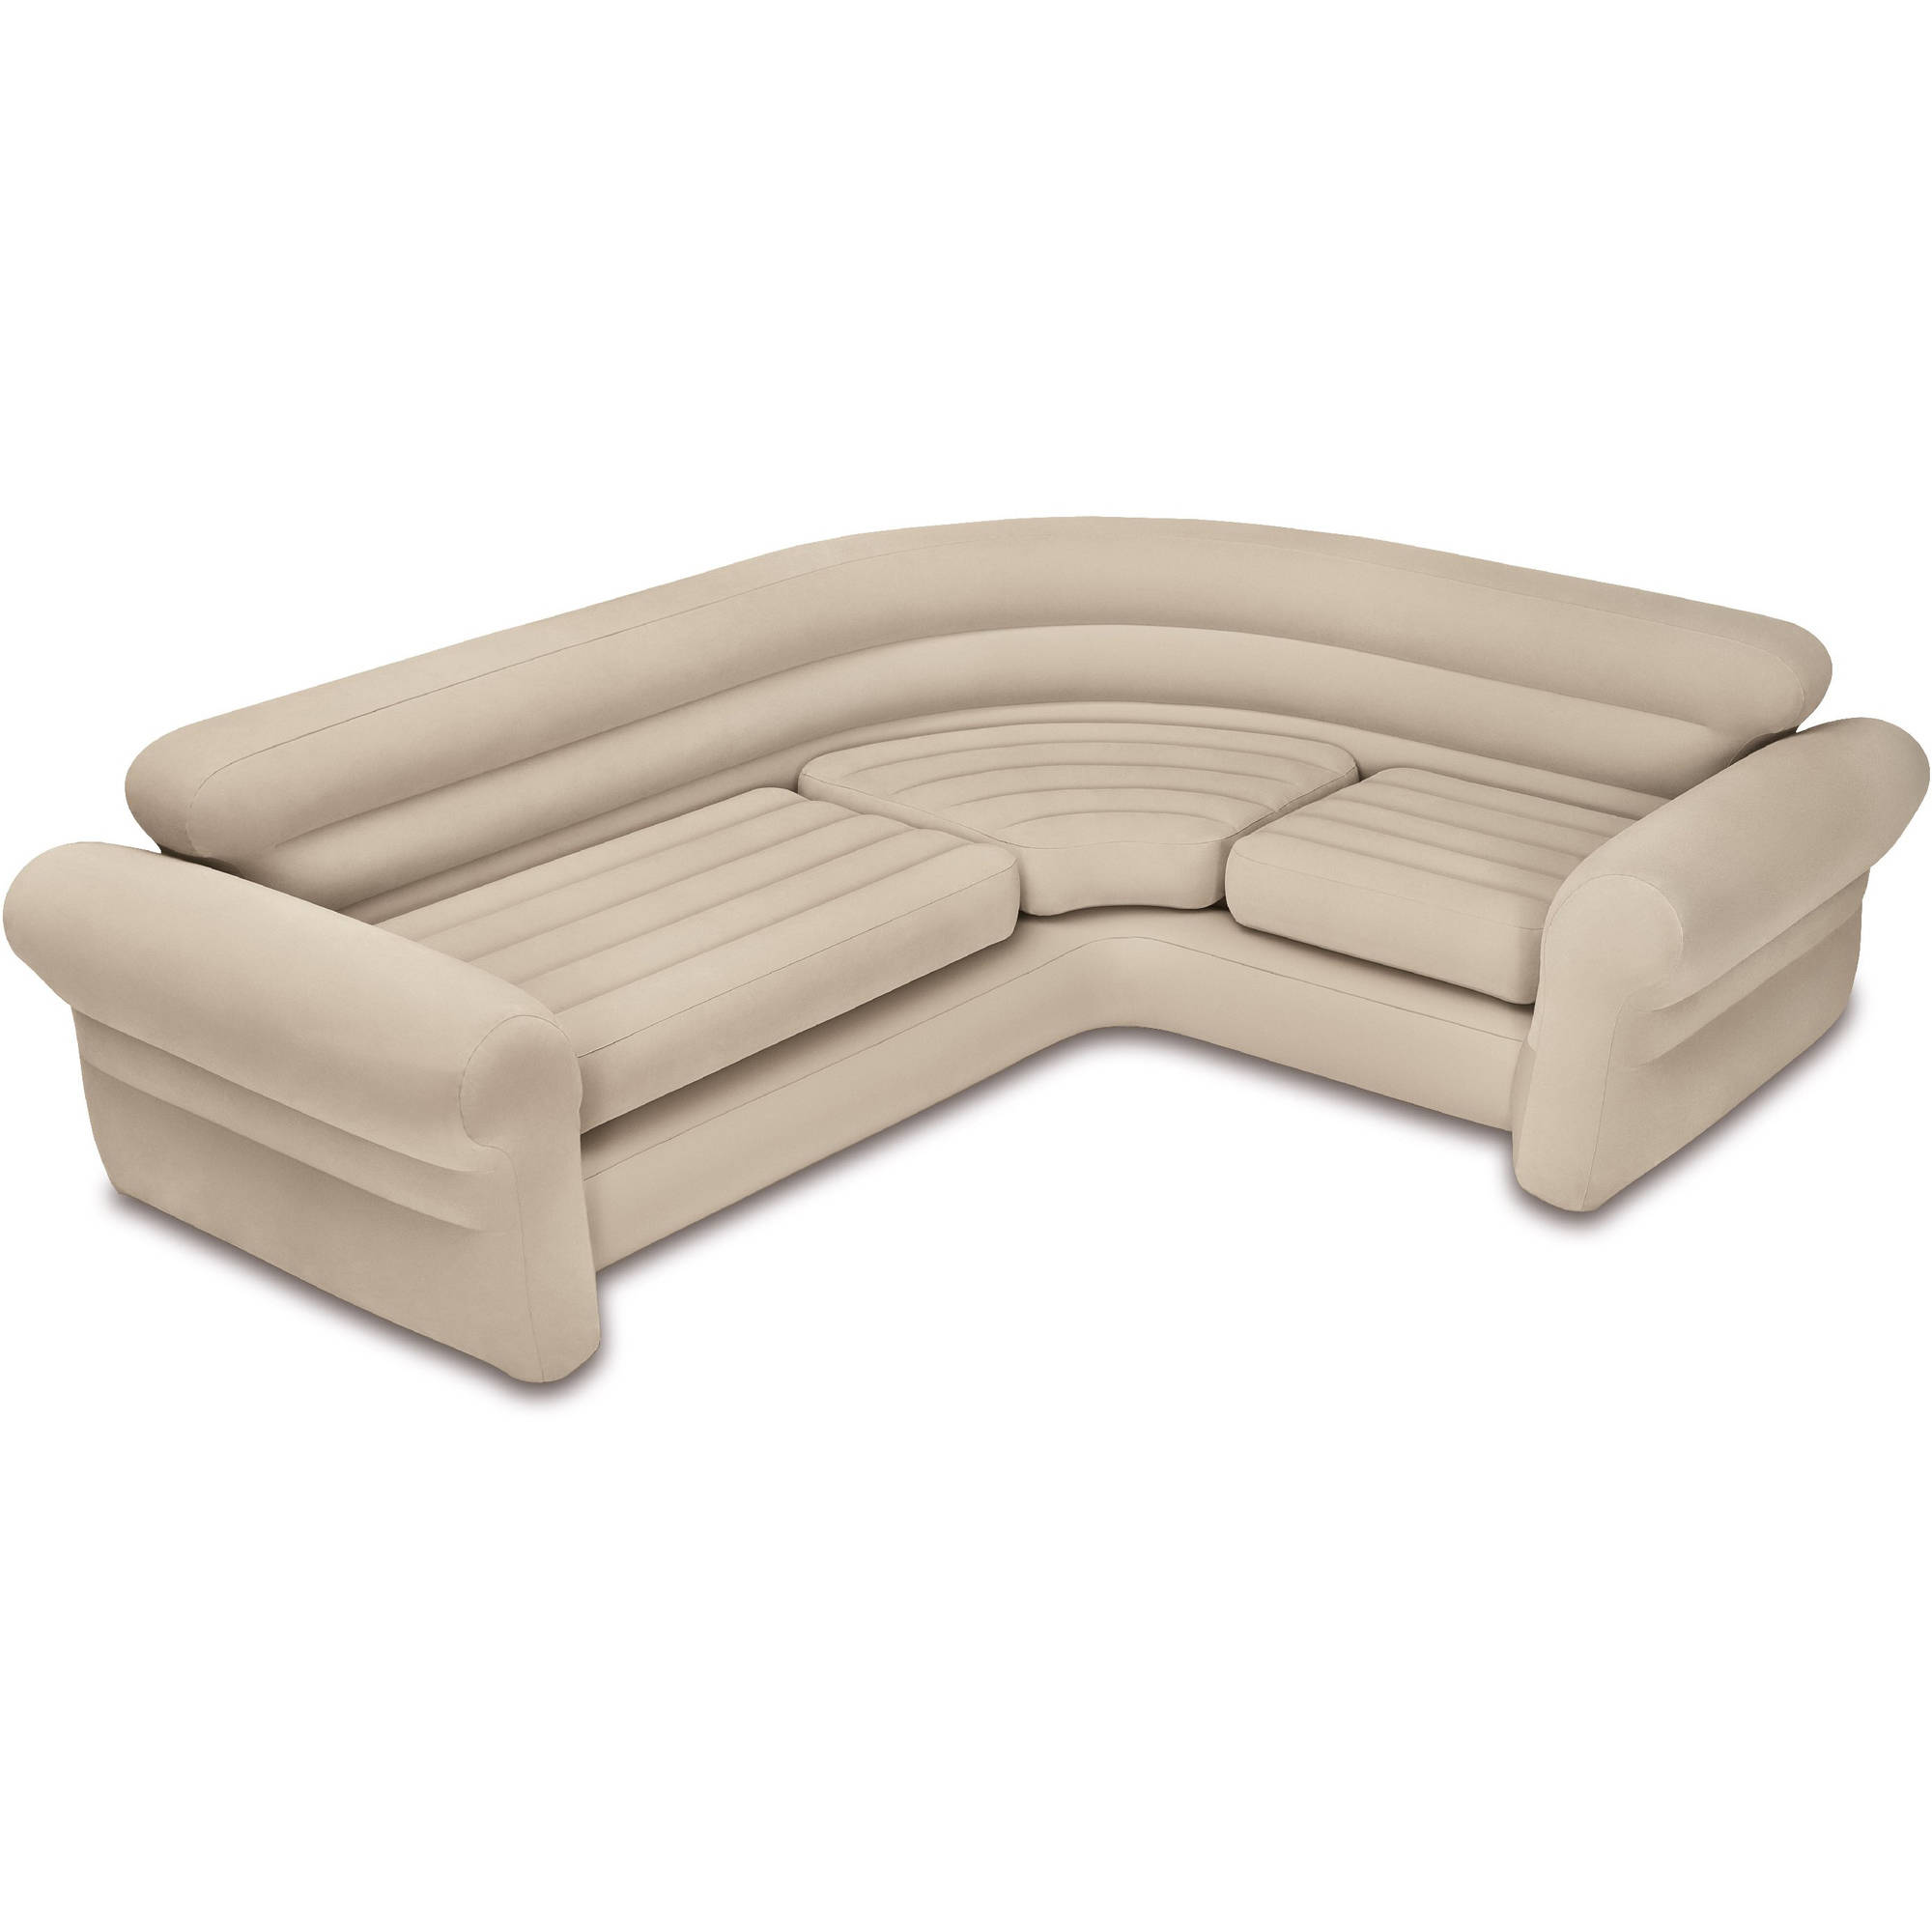 Intex Inflatable Corner Sofa Walmart